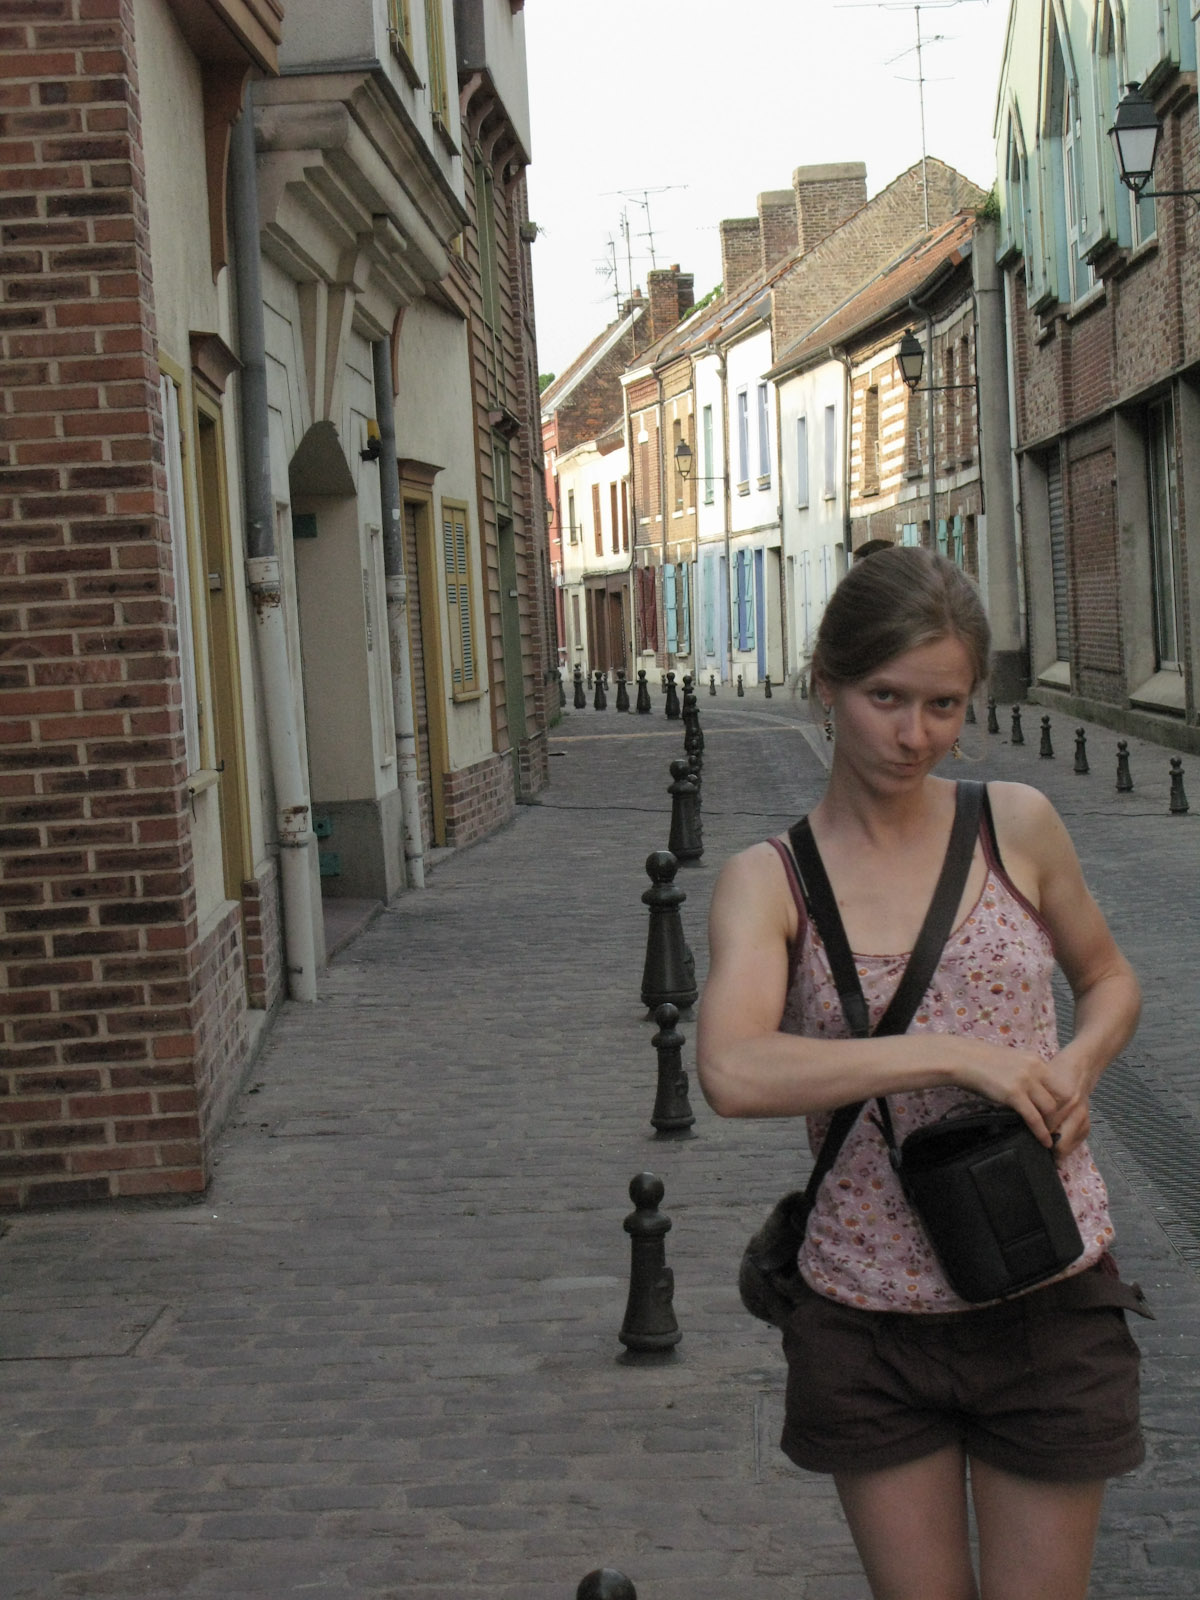 Hanne in Amiens